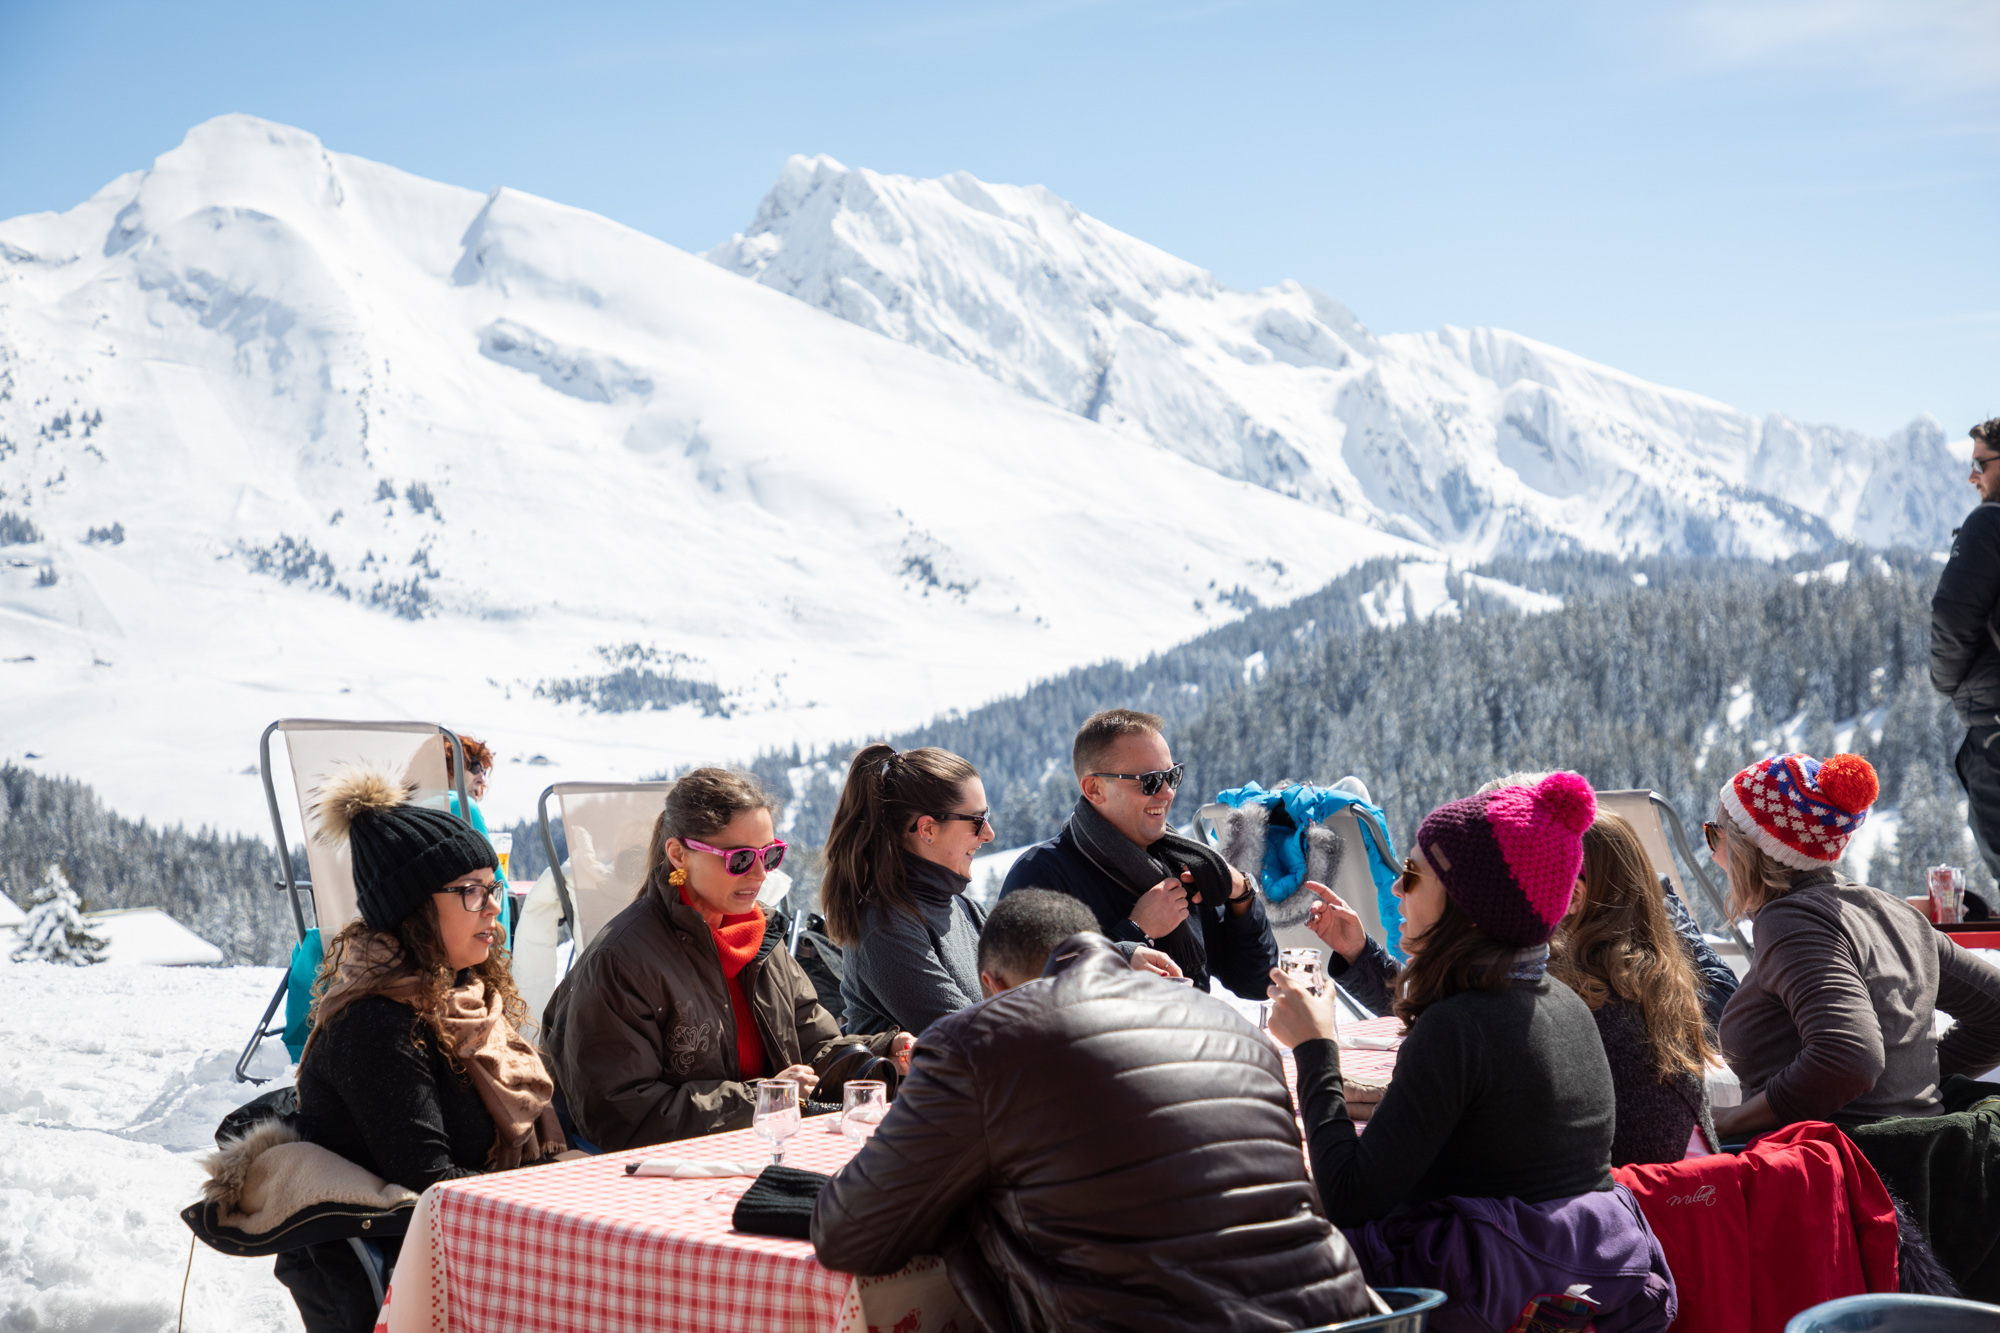 Break_The_Ice_LaClusaz_2019_web-6717.jpg